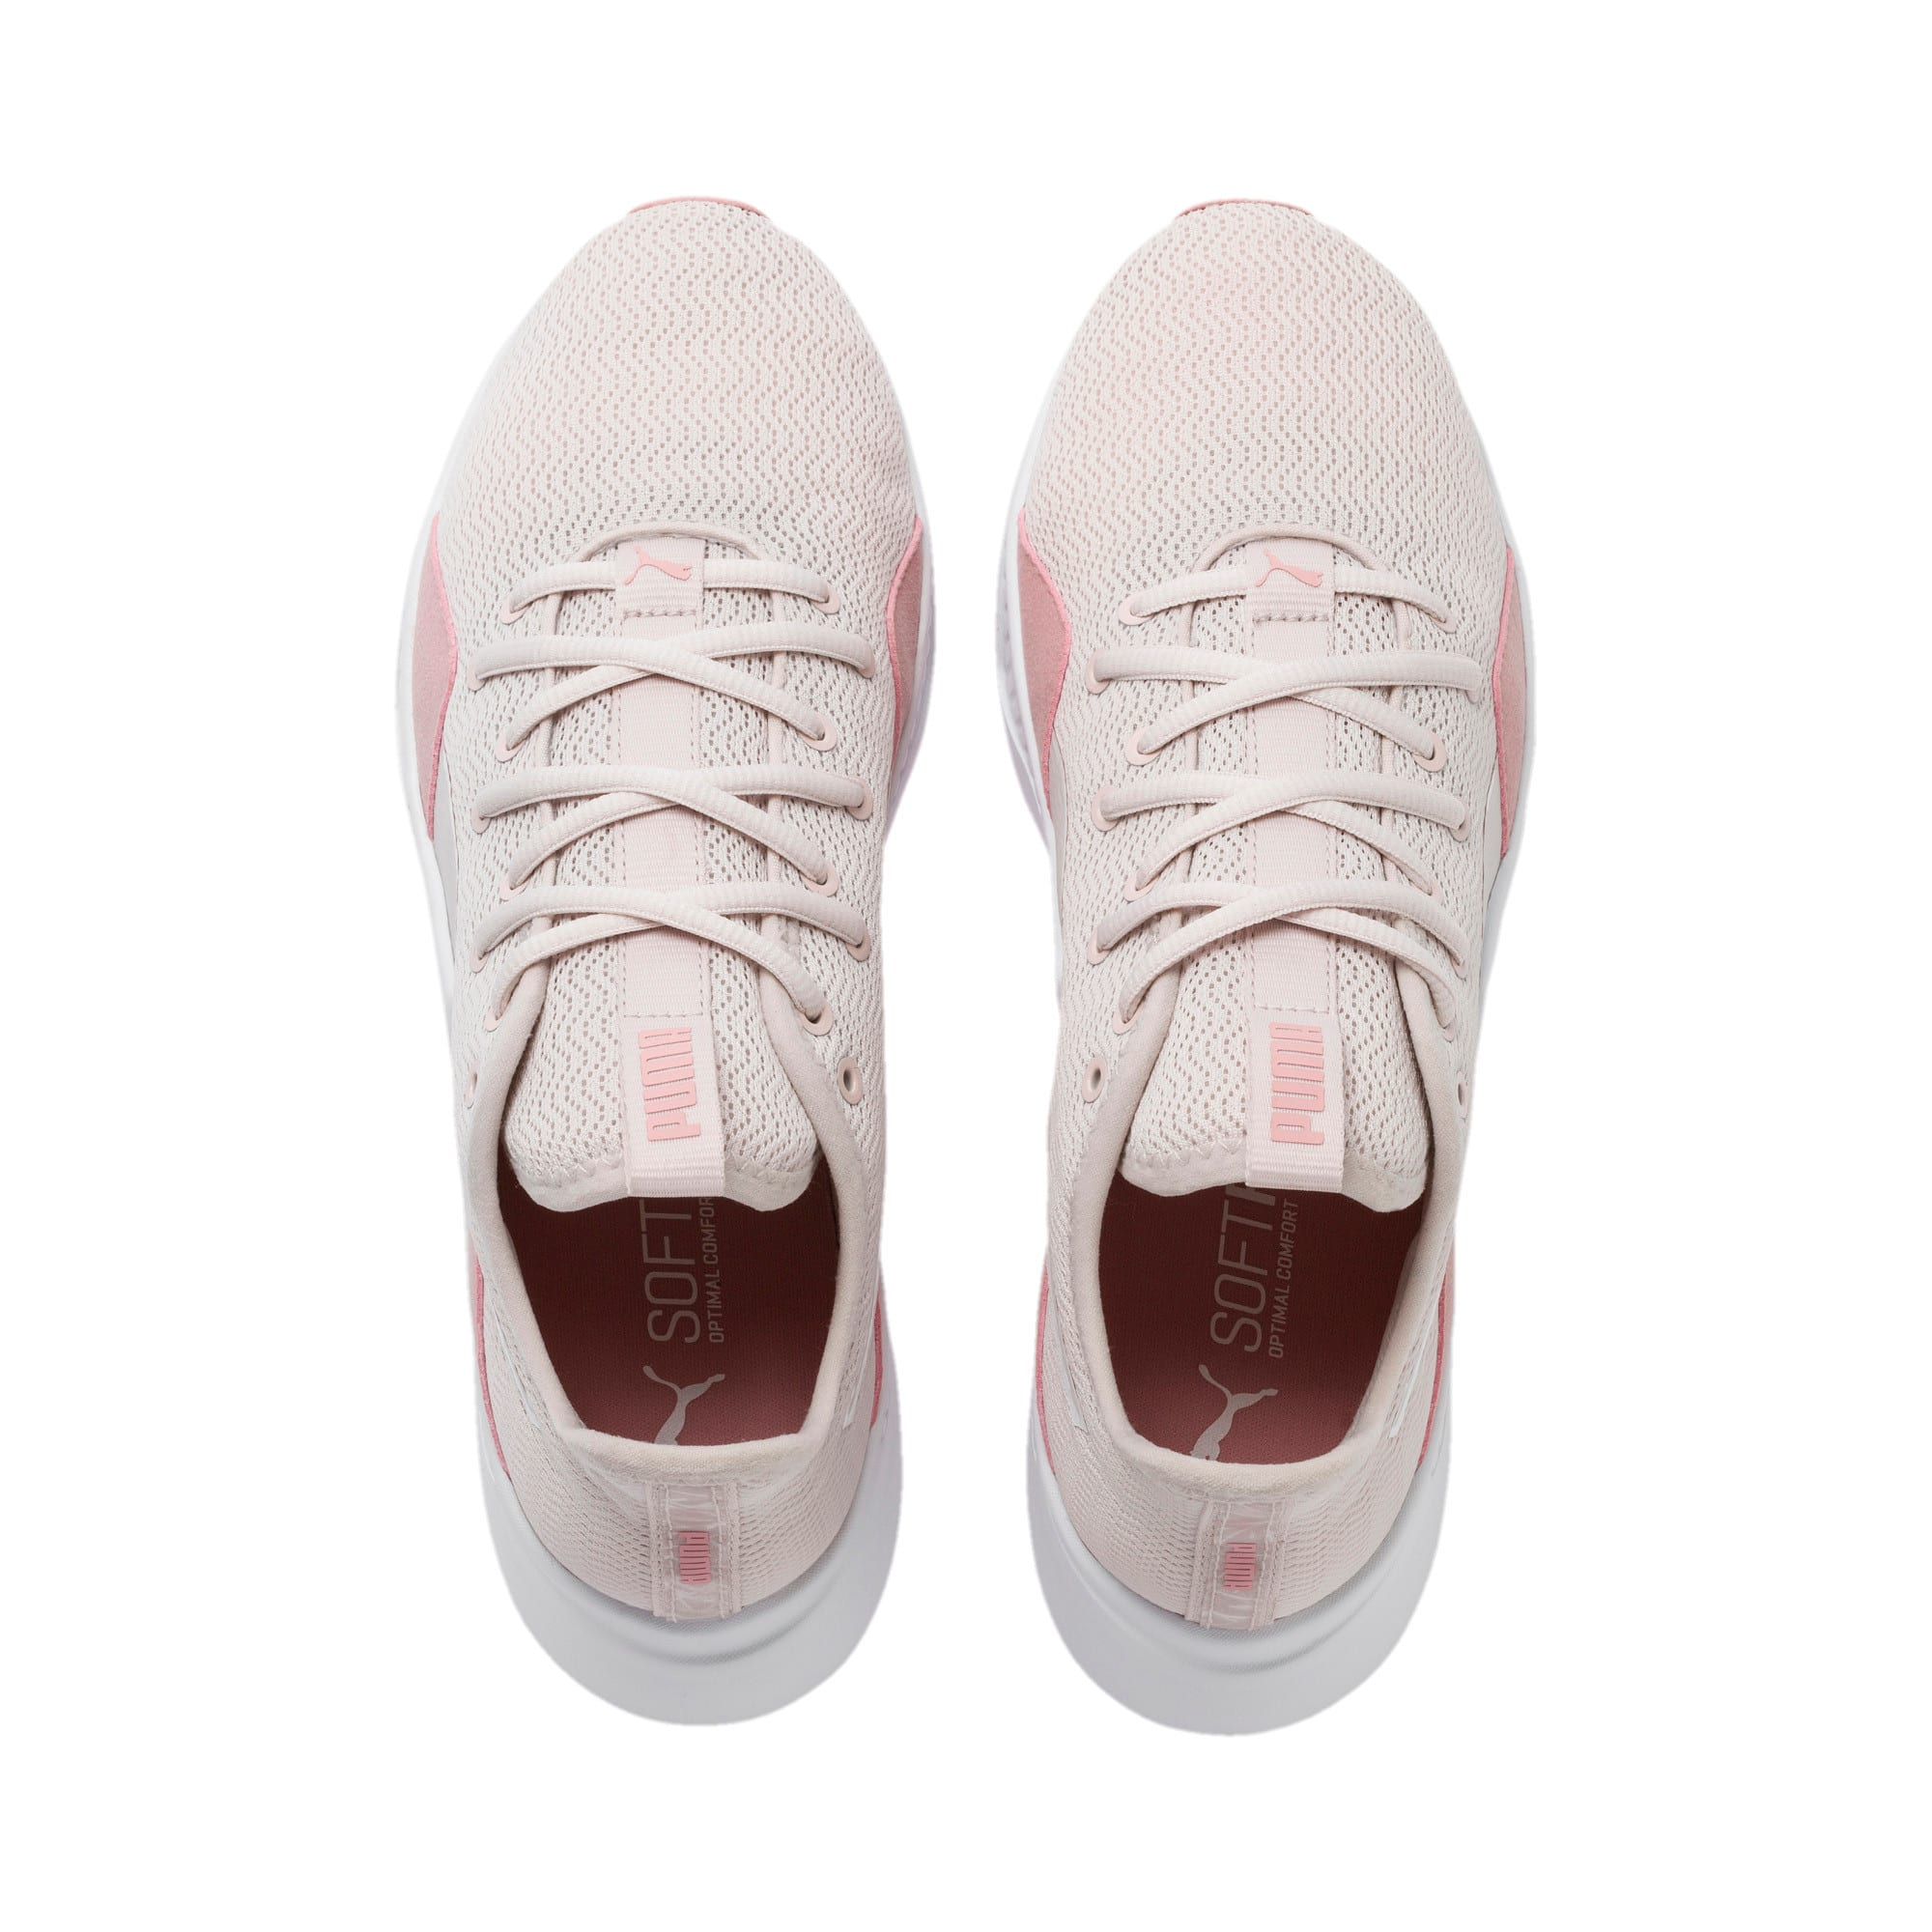 Thumbnail 4 of Incite FS Shift Women's Trainers, Pastel Parchment-Rose-White, medium-IND